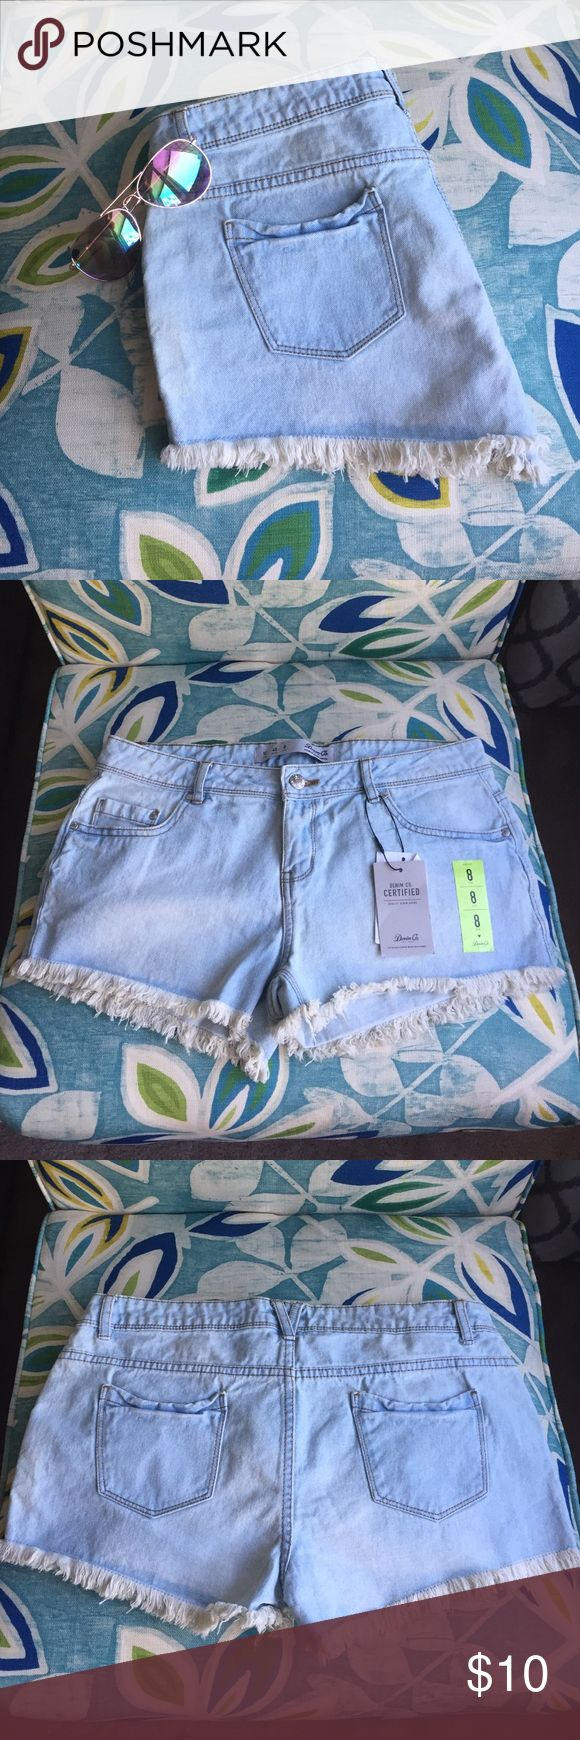 <BNWT> Jean Shorts <BNWT> jean shorts with frayed edges. Size 8 but run small, fit more like a 6. Primark Shorts Jean Shorts